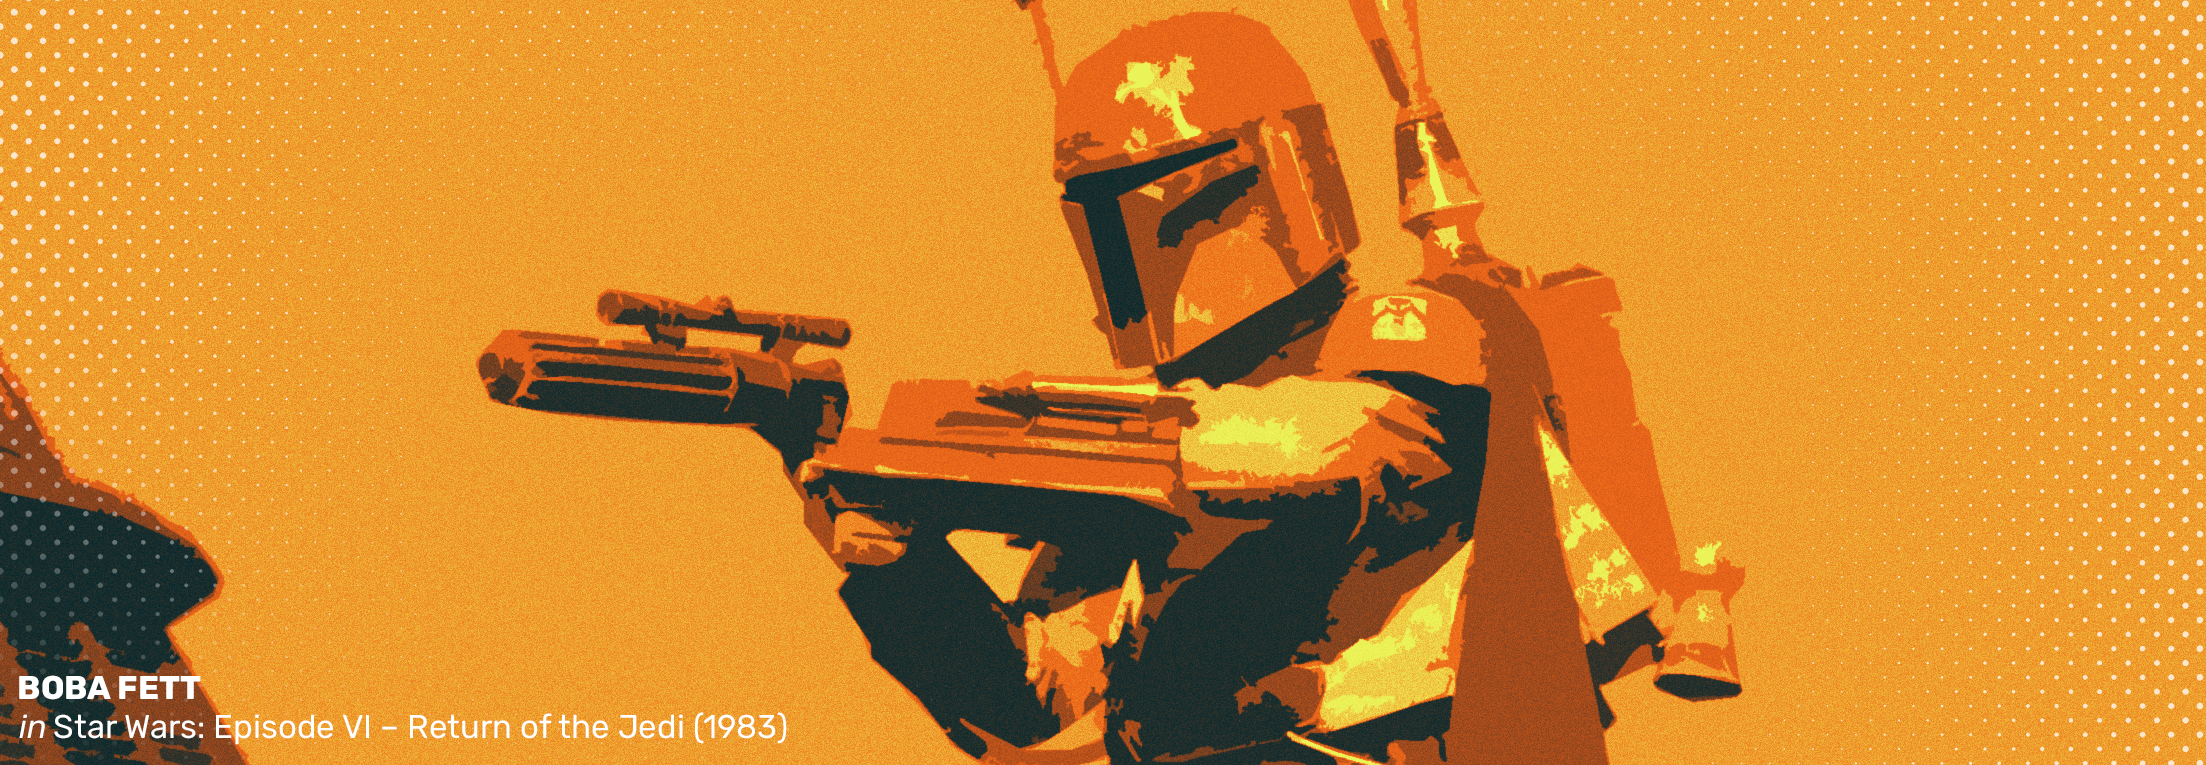 Star Wars: The History of the Mandalorian People